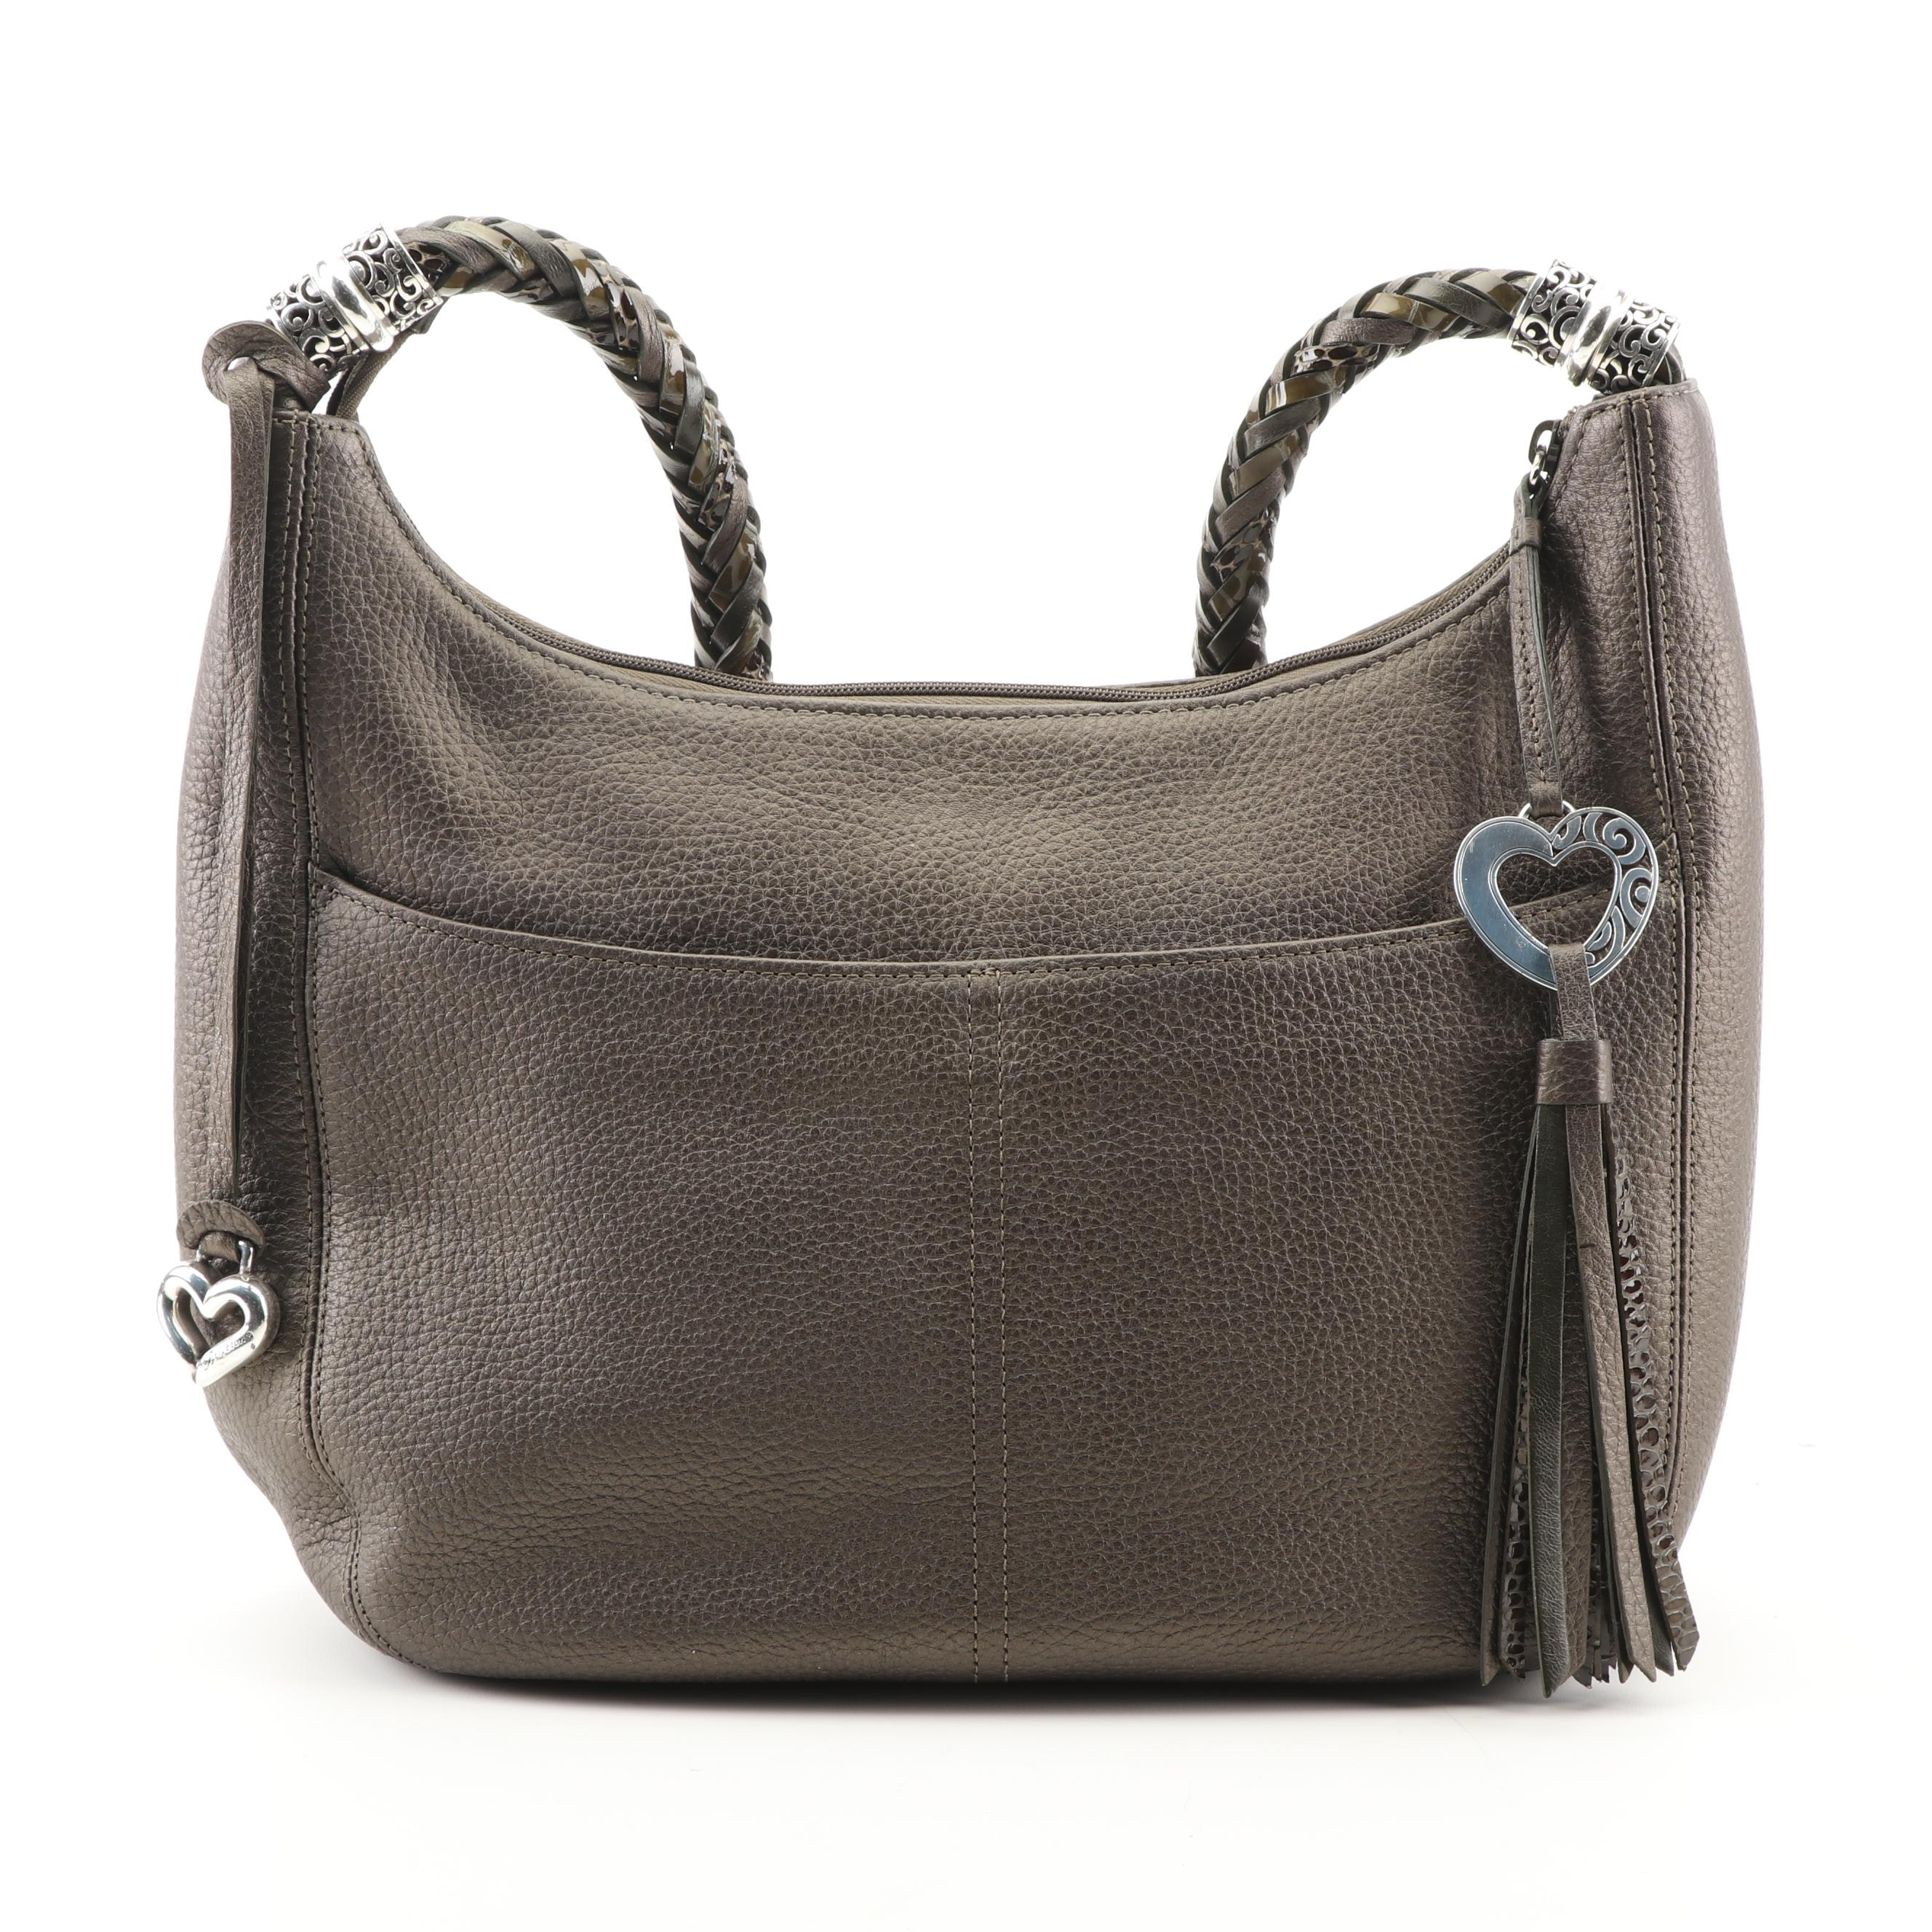 Brighton Deep Olive Green Leather Hobo Bag with Braided Strap